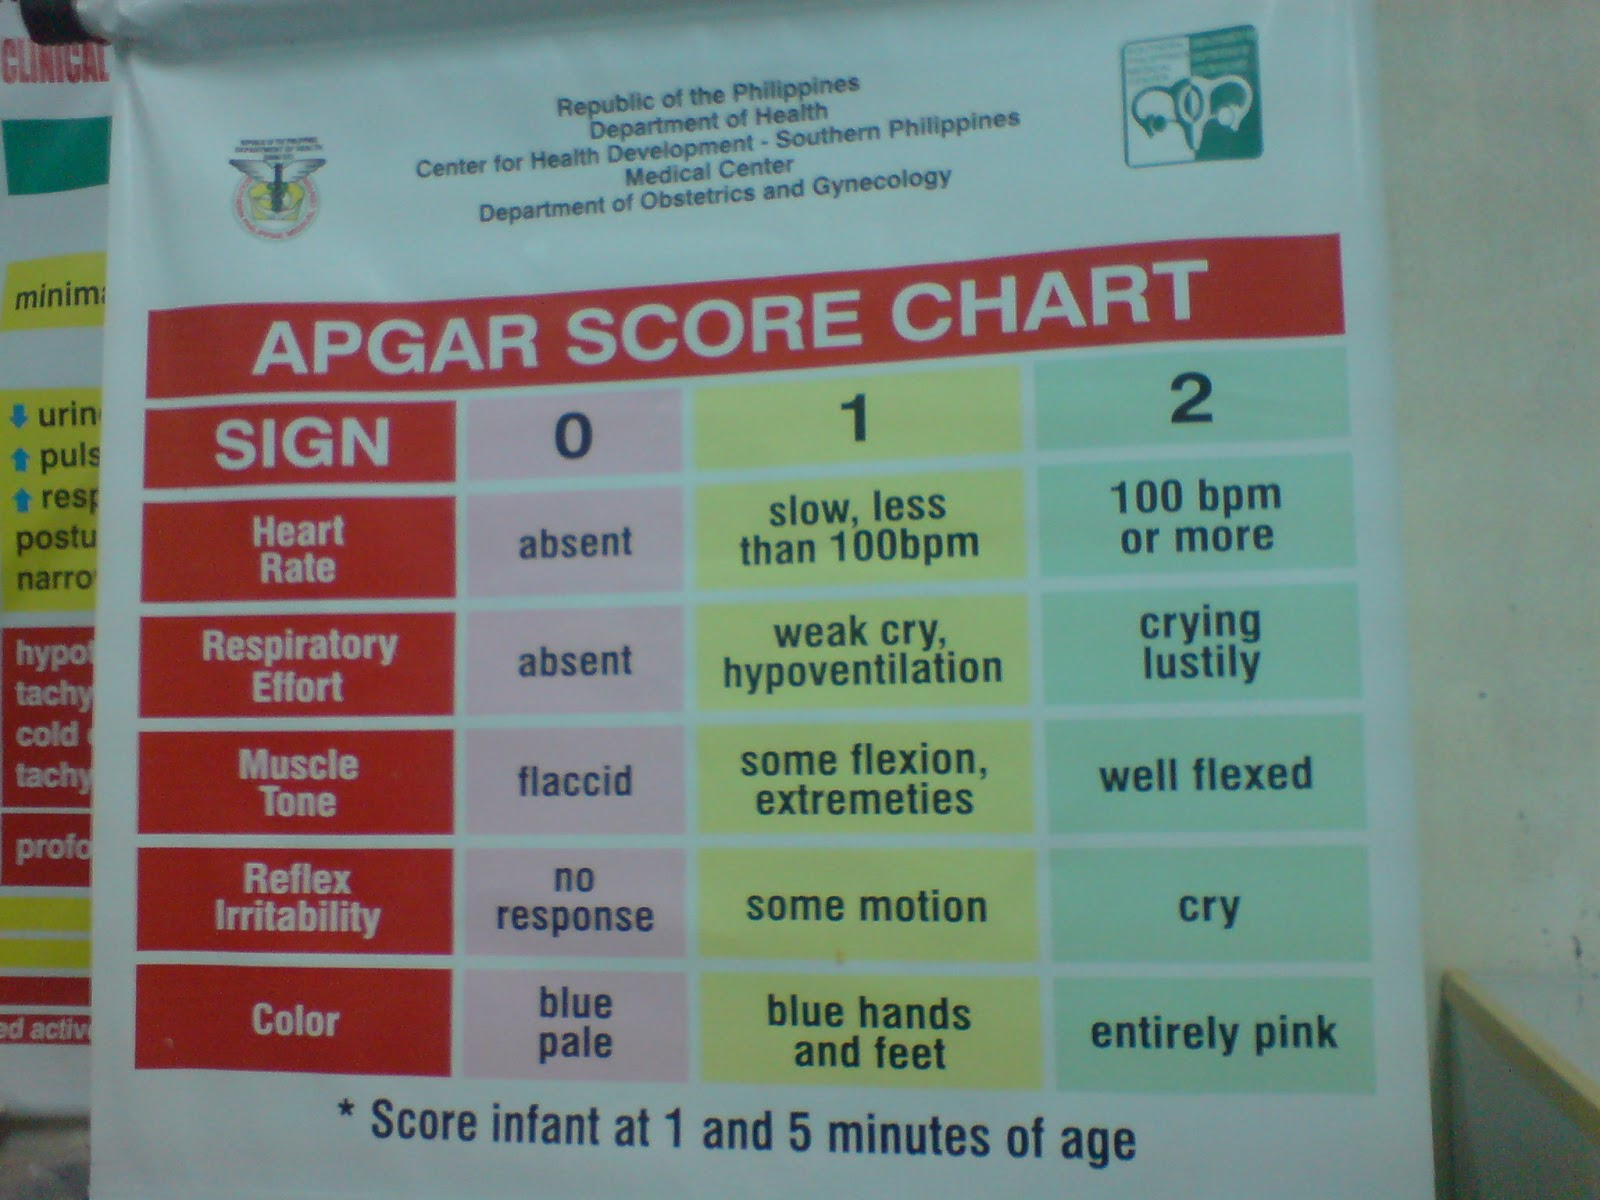 Score Chart Is Used As A Guideline For Newborn Service Providers In Treating Babies From 1 To 5 Minutes Of Age